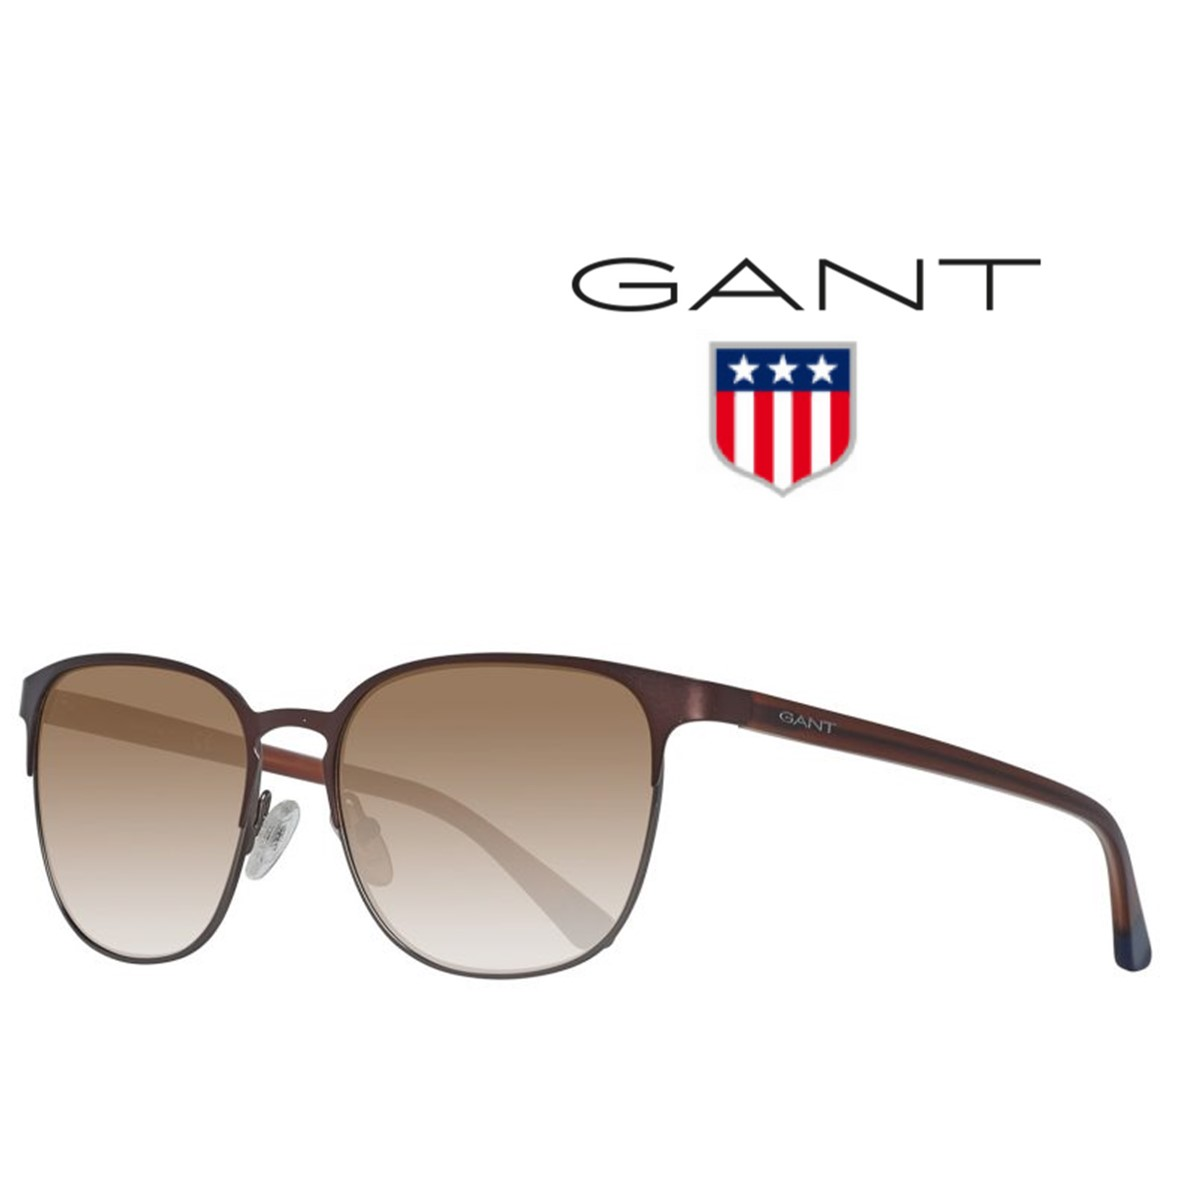 Gant® Óculos de Sol GA7077 49E 54 - You Like It 3127453061